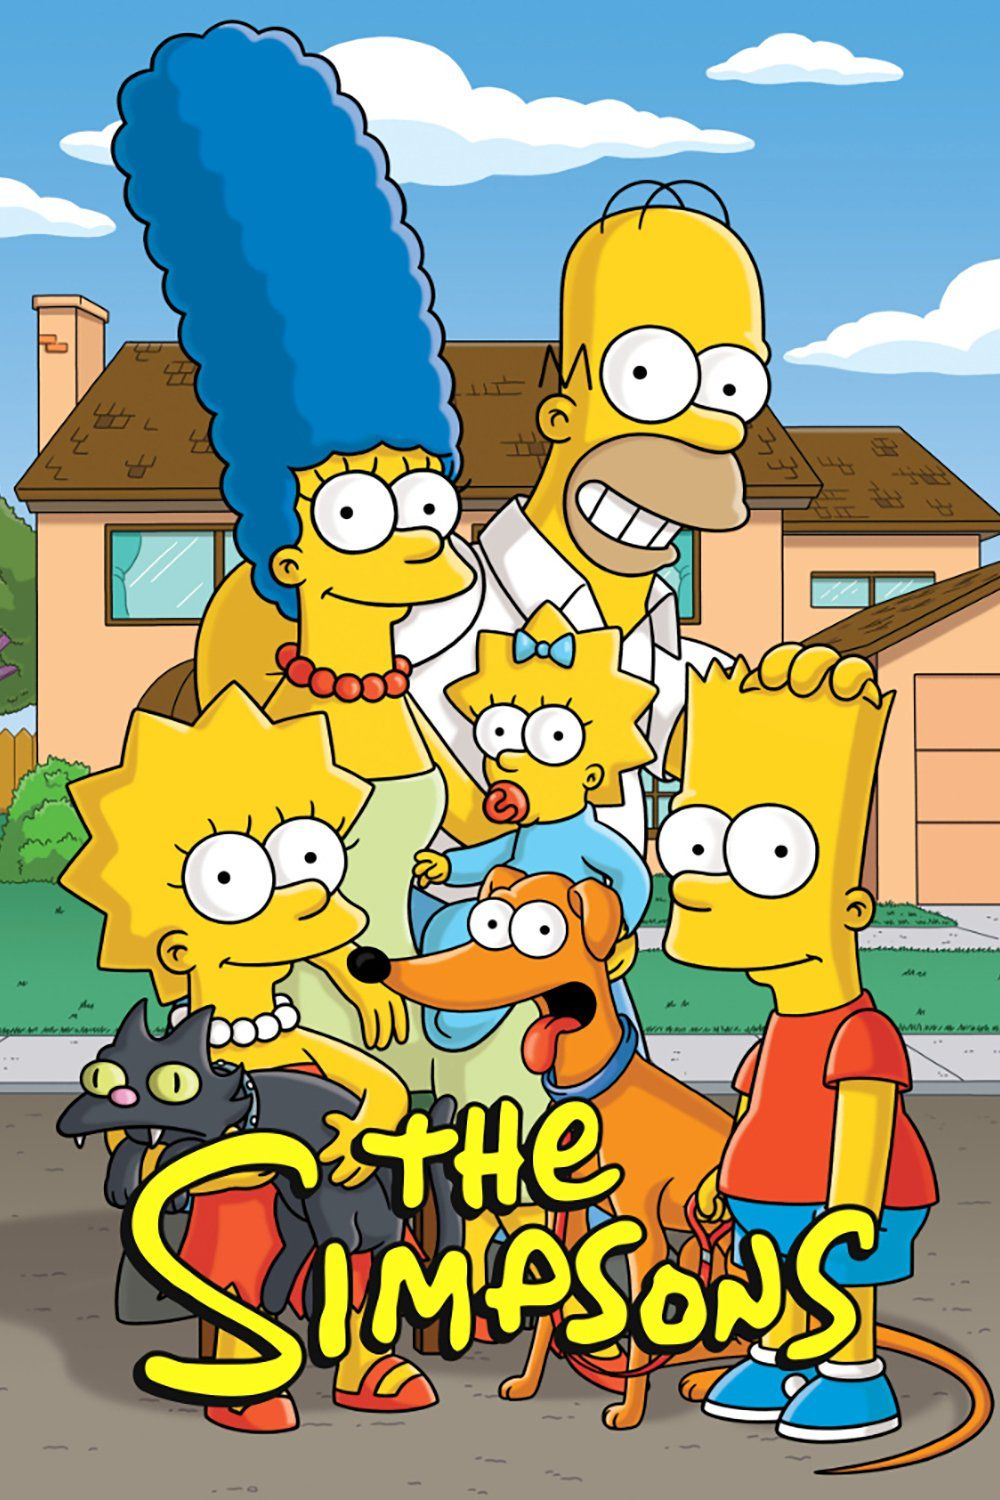 Free download the simpsons episodes to mp4 for offline playback.